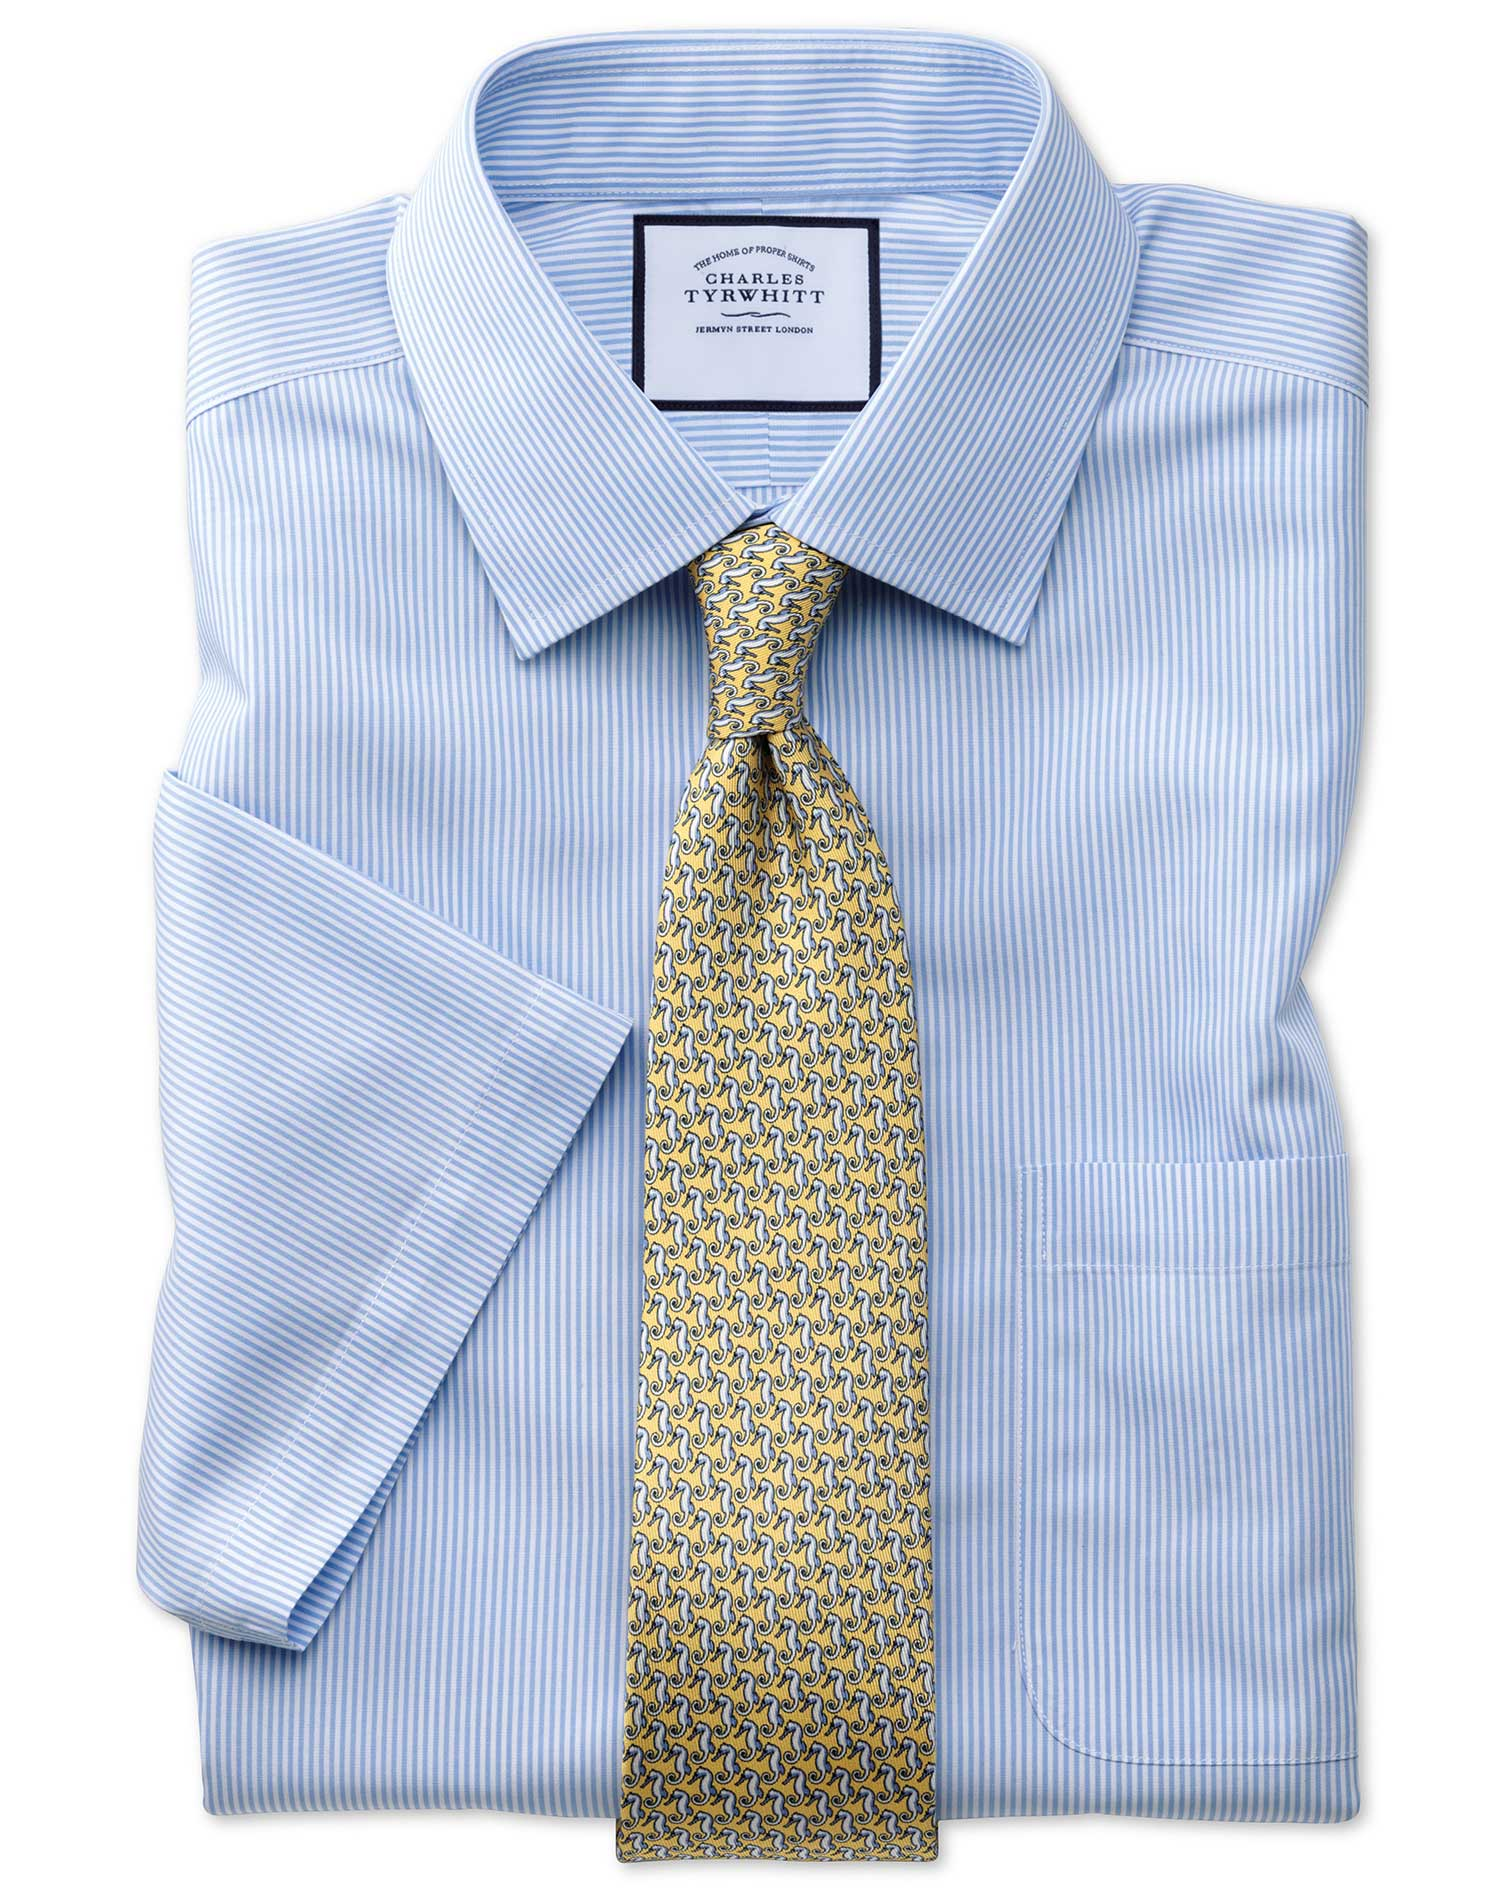 Classic Fit Non-Iron Bengal Stripe Short Sleeve Sky Cotton Formal Shirt Size 16/Short by Charles Tyr